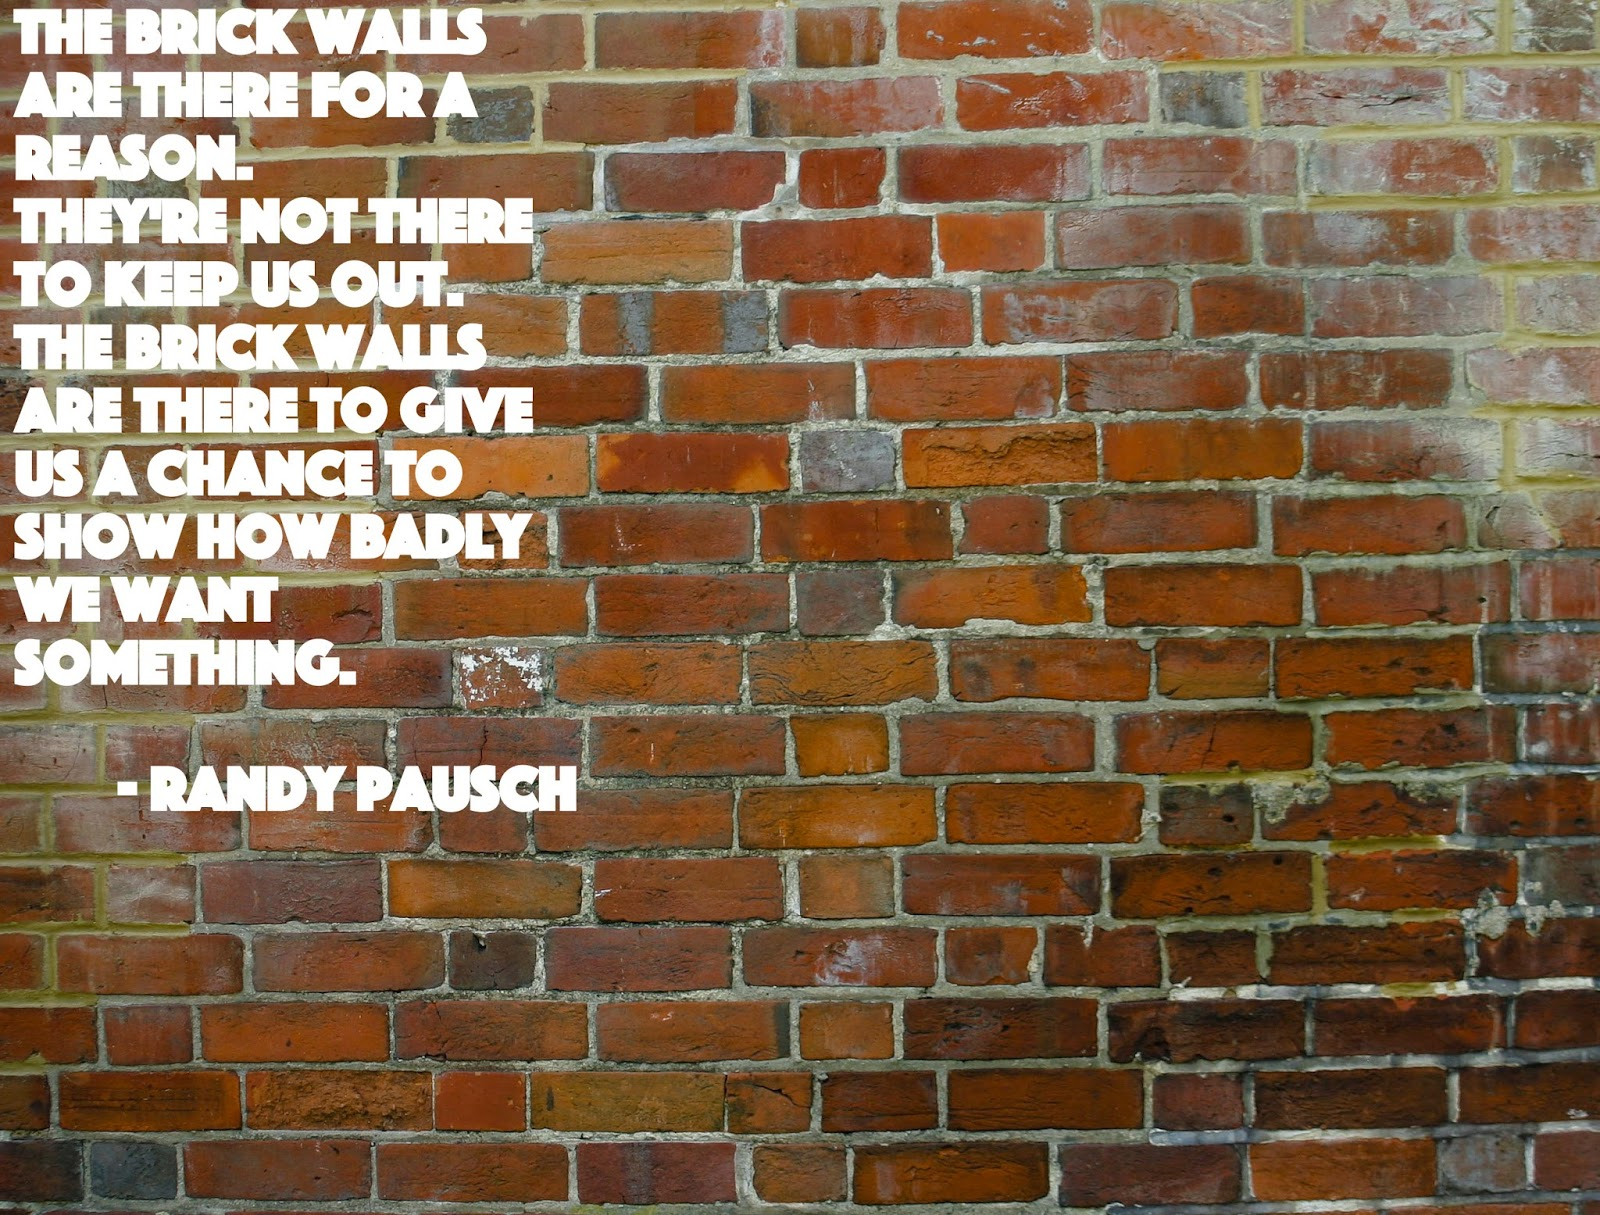 Quotes About Hitting a Brick Wall The Brick Walls Are There For